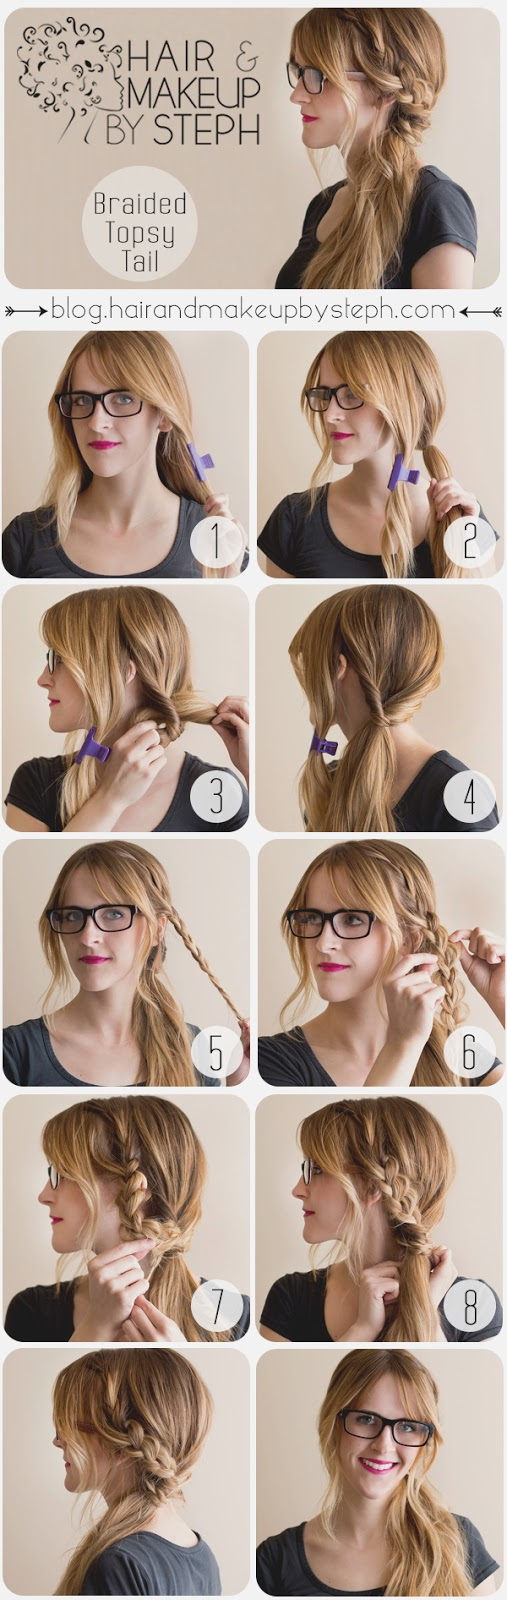 18 Easy Step by Step Tutorials for Perfect Hairstyles